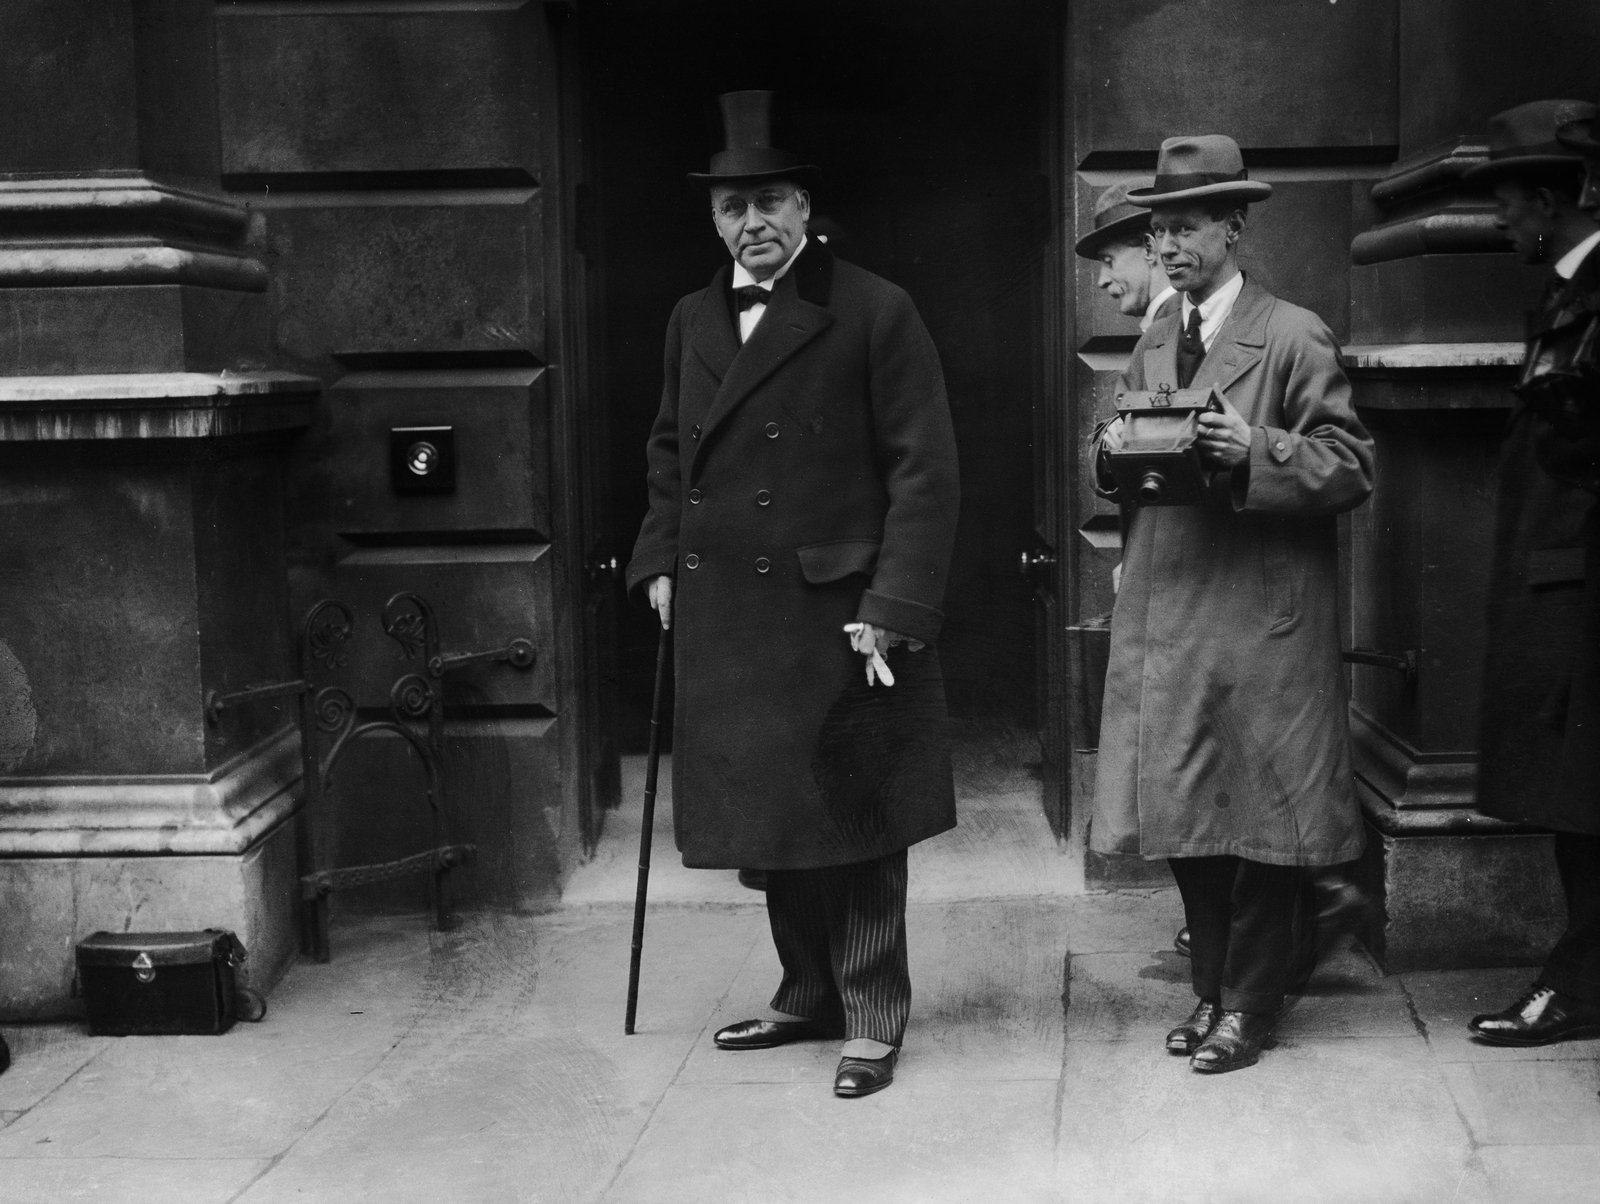 Image - Irish secretary Hamar Greenwood, shown here leaving Downing Street in 1922 (Photo by Topical Press Agency/Getty Images)